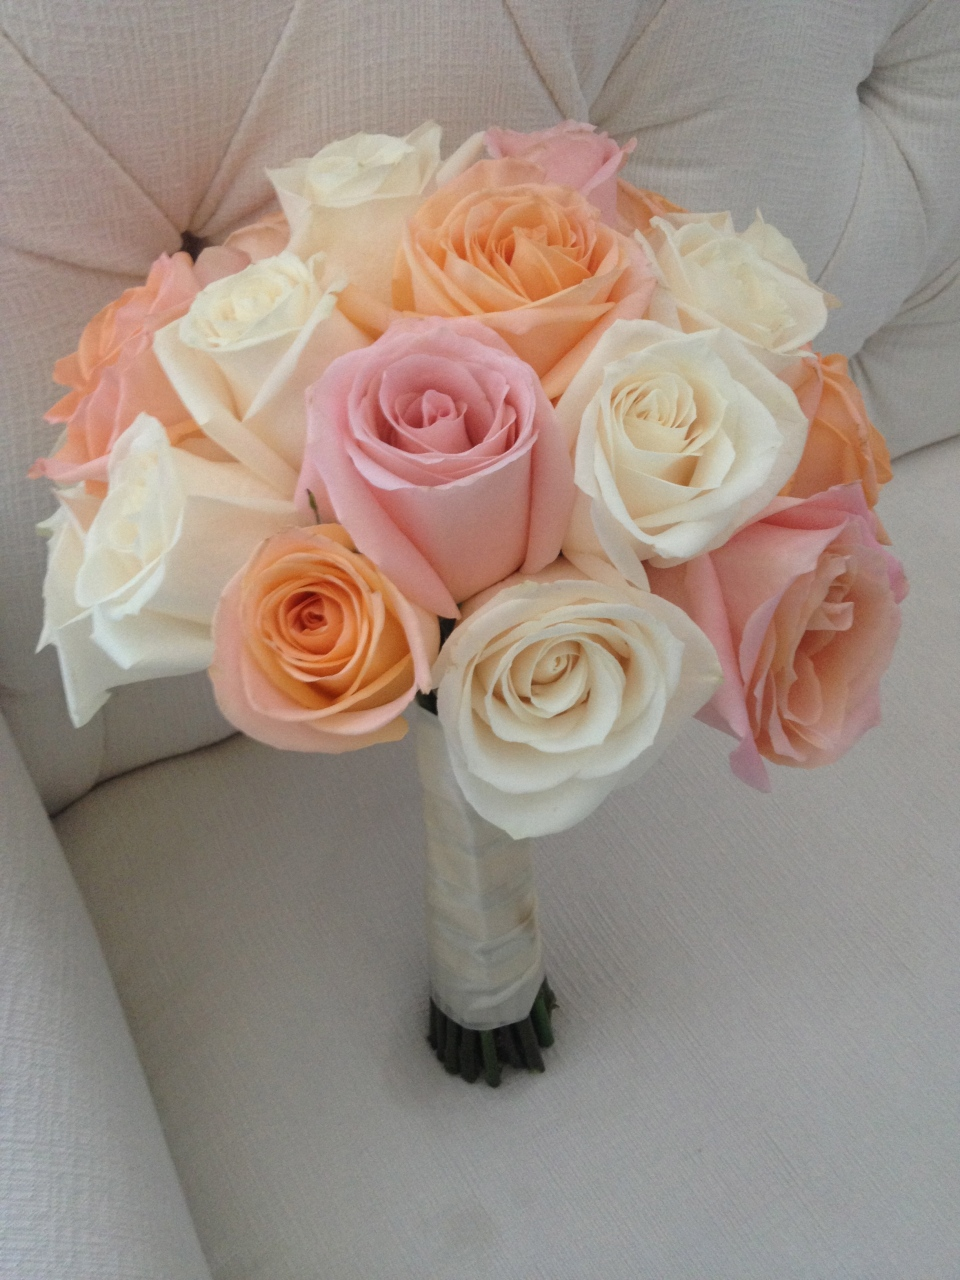 Bridal bouquet of ivory, blush and peach roses.